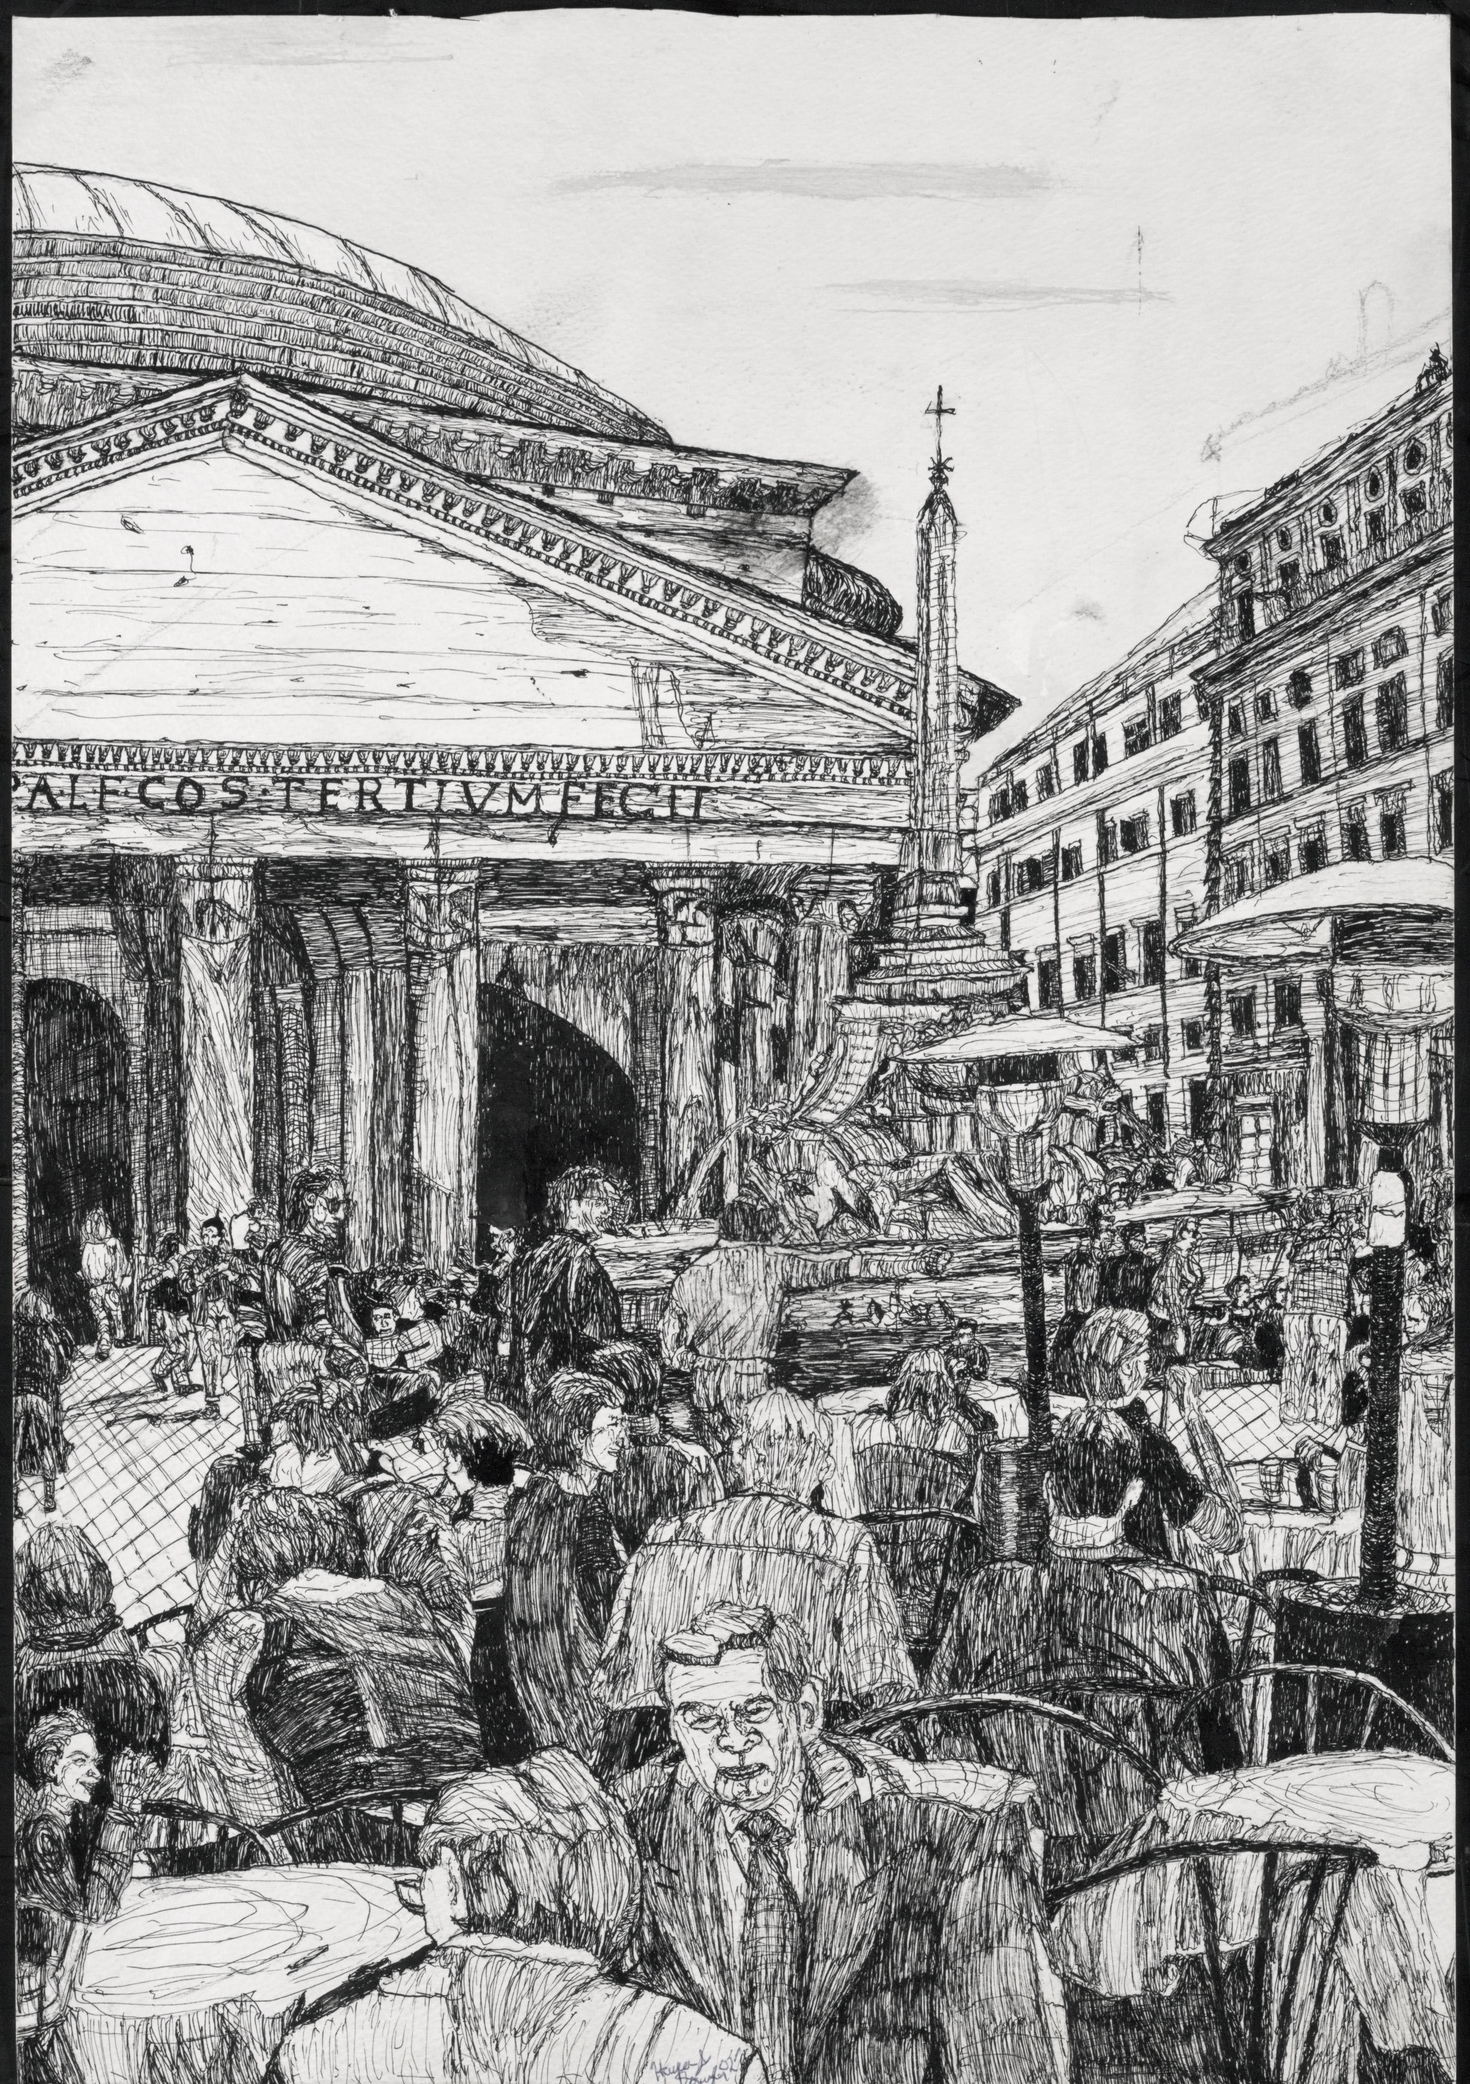 """Café outside the Pantheon, 15"""" by 21.7"""", Pen and ink on paper"""